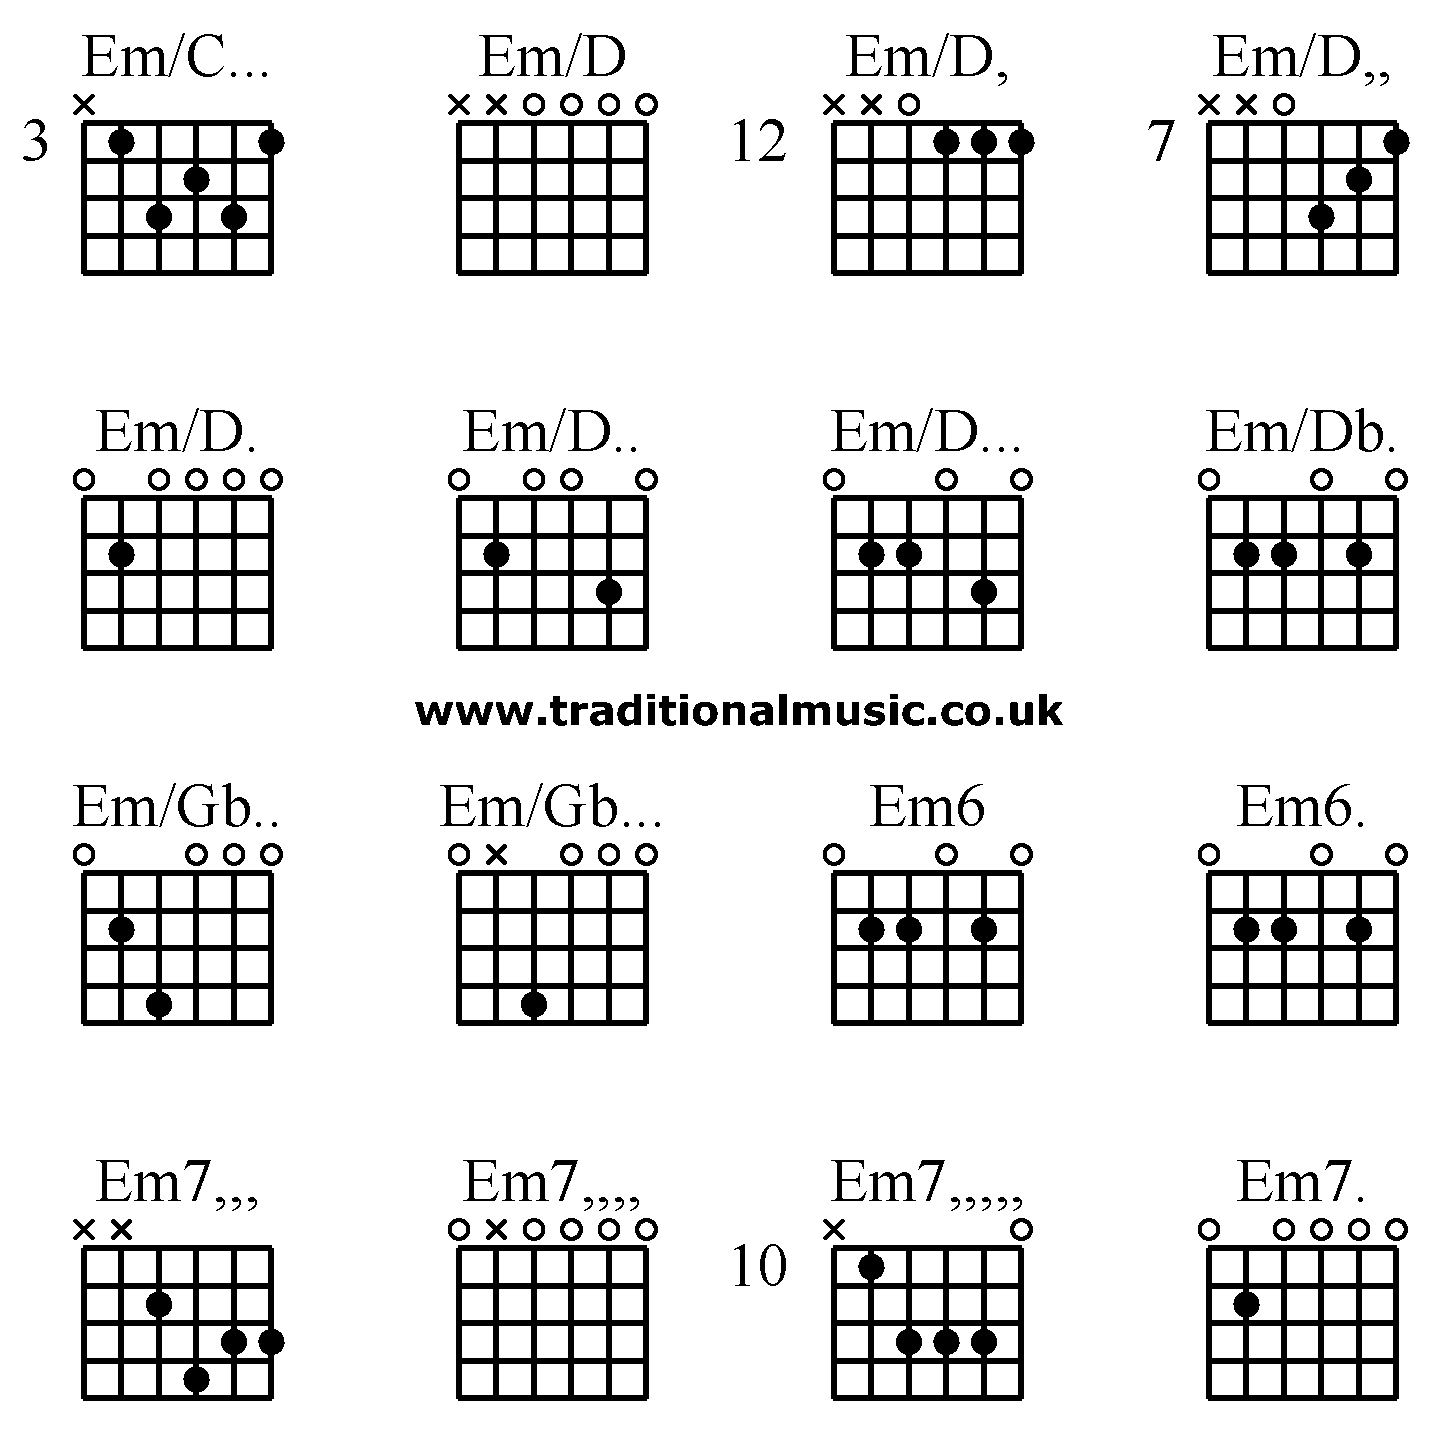 Dreamy guitar chords choice image guitar chords examples heenayak wage guitar chords choice image guitar chords examples d guitar chords image collections guitar chords hexwebz Gallery